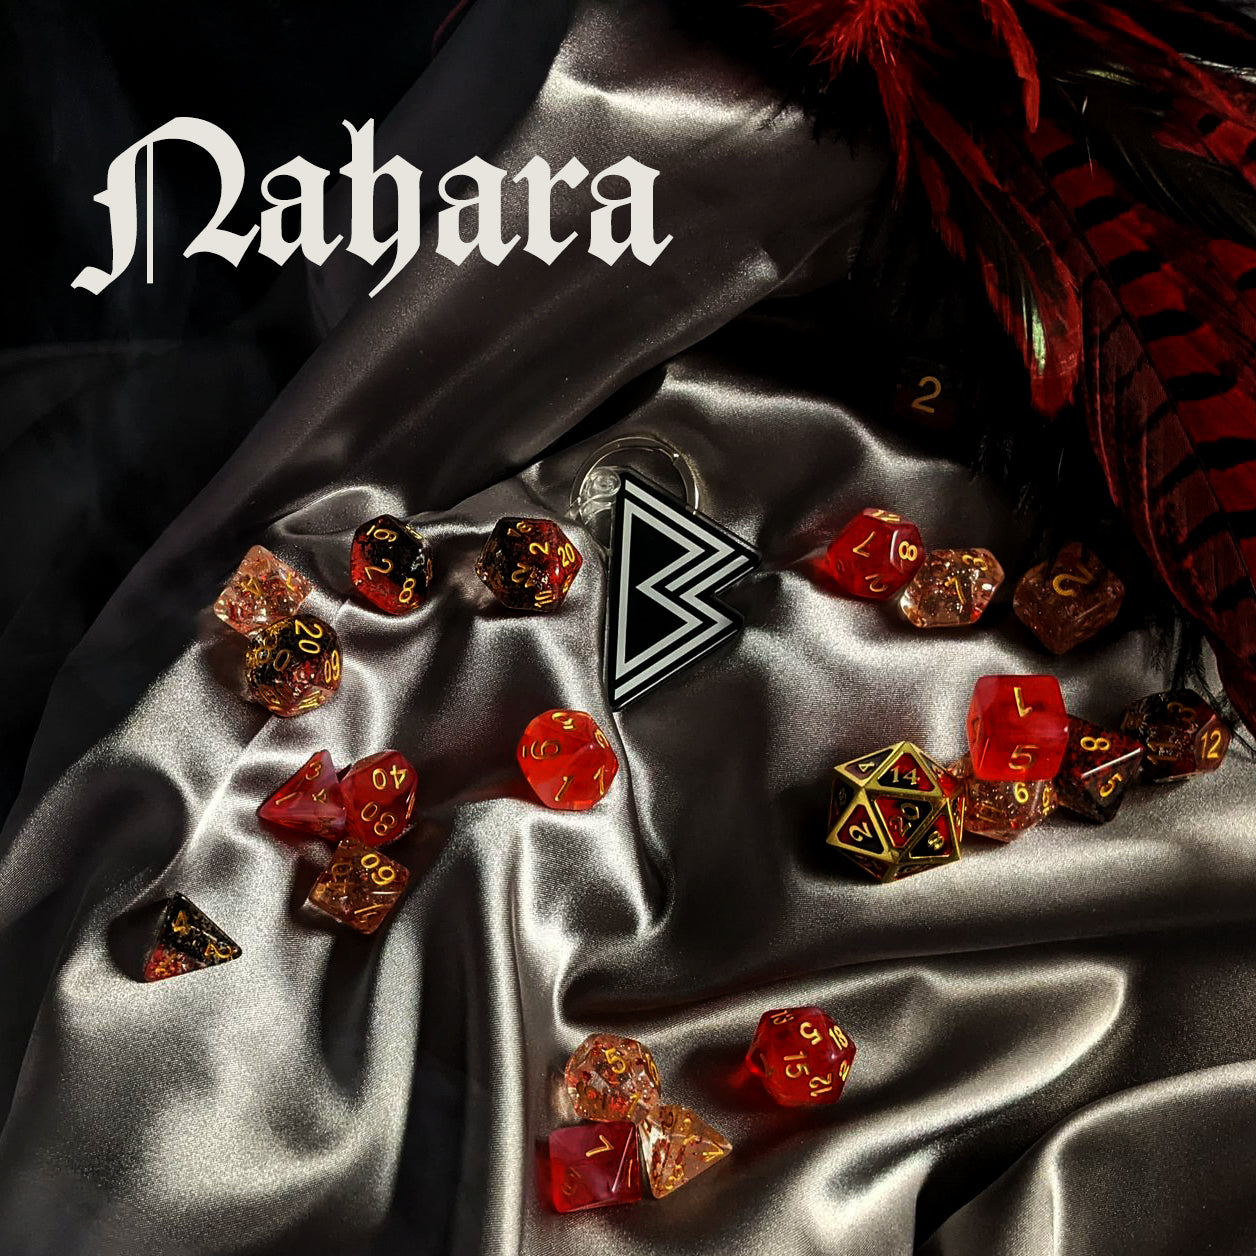 The Nahara Dice Palette